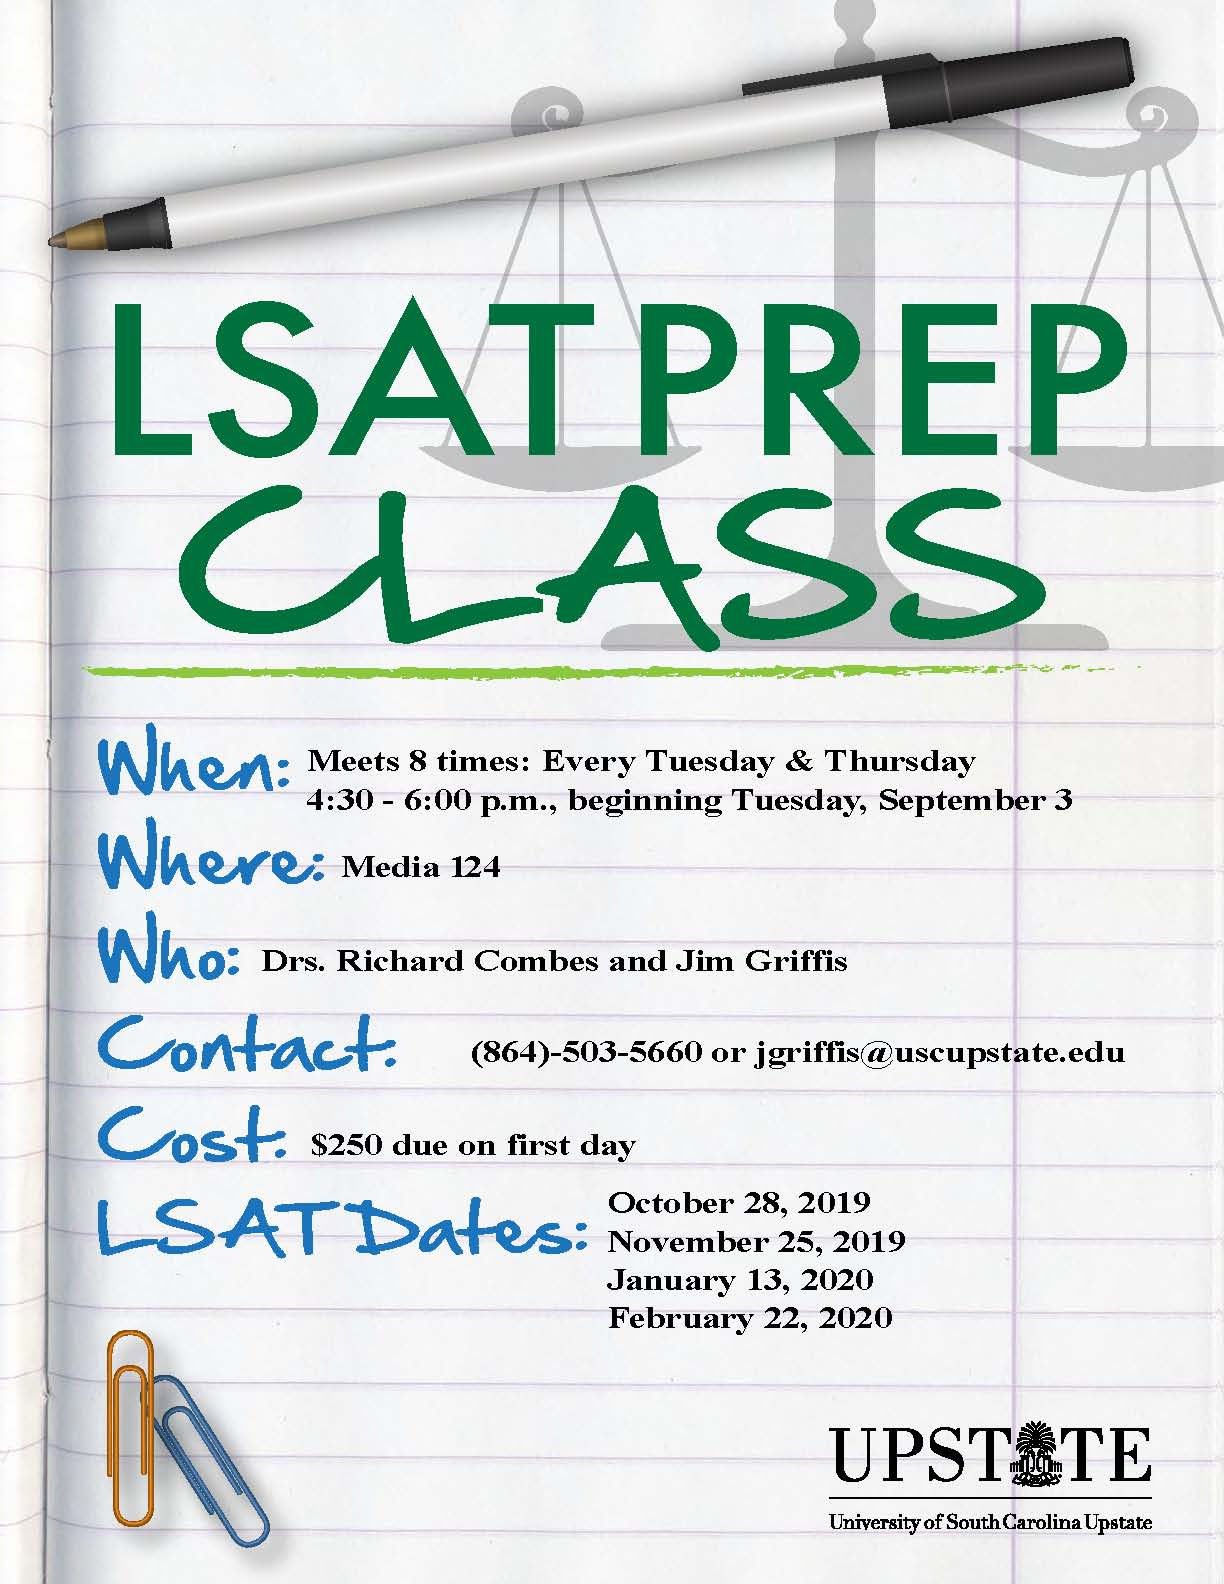 LSAT prep class for more information call(864)-503-5660 or email jgriffis@uscupstate.edu